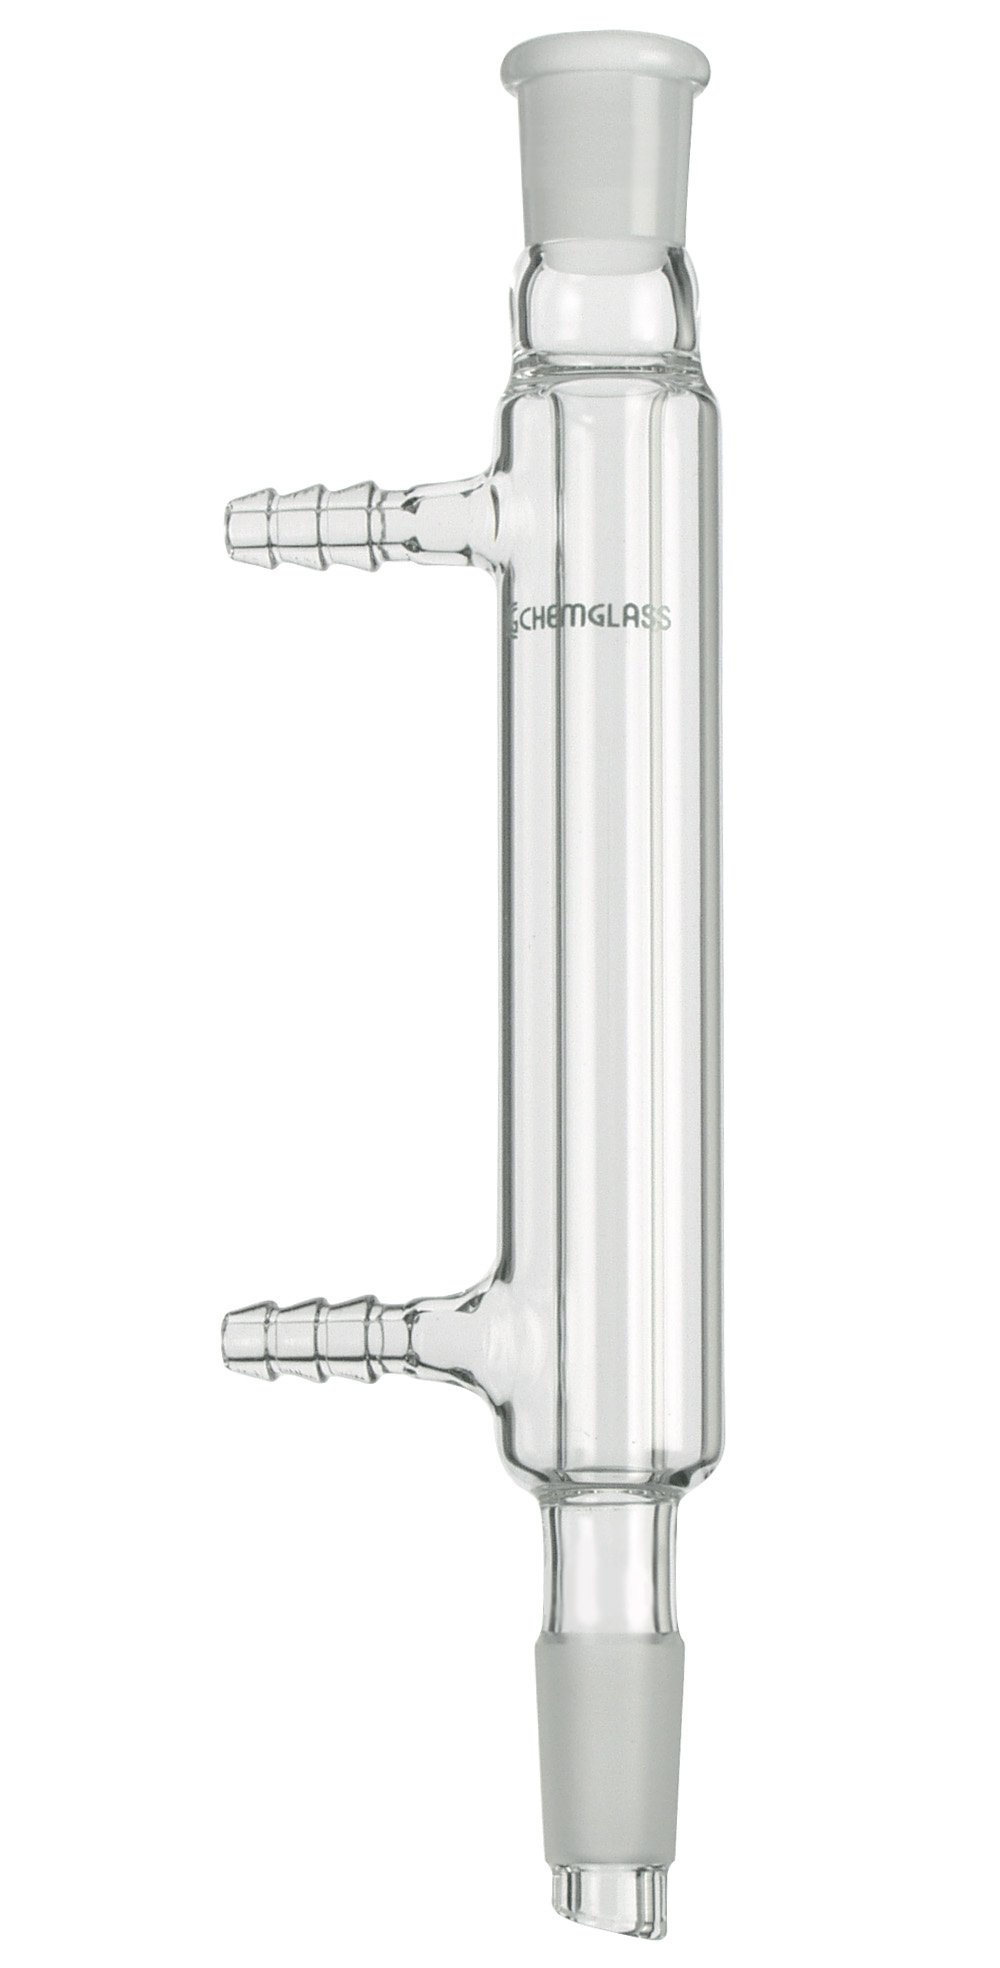 Chemglass CG-1218-A-20 Glass Small Scale Liebig Condenser, 110mm Jacket Length, 185mm Overall Length, 14/20 Top Outer Joint, 14/20 Lower Inner